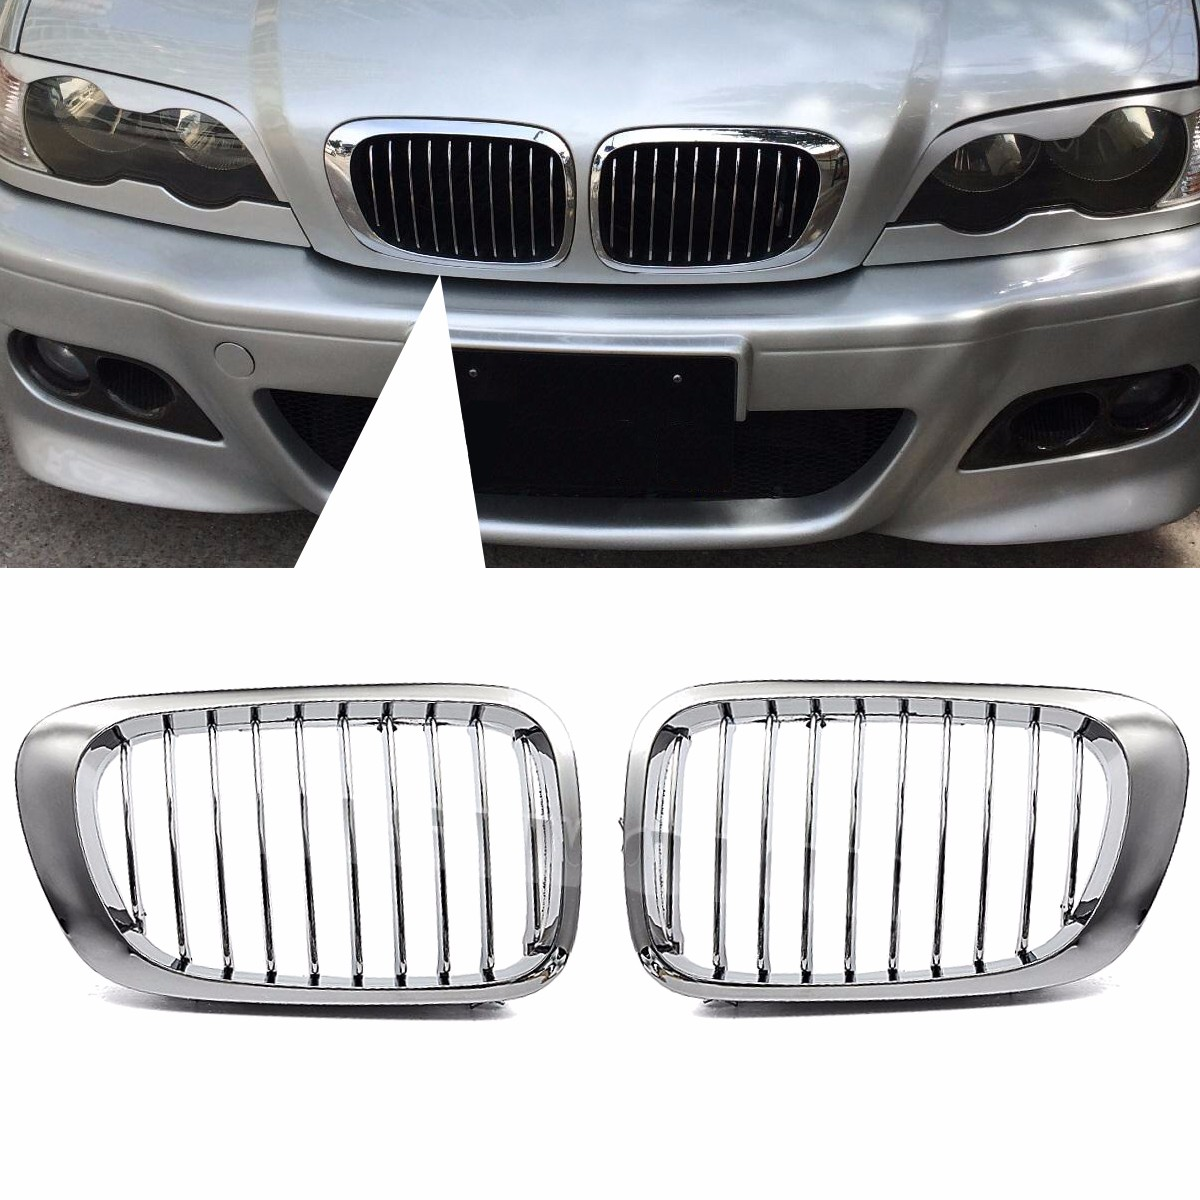 For BMW E46 325Ci 330Ci <font><b>3</b></font>-Series M3 2 Doors 1999 <font><b>2000</b></font> 2001 2002 2003 2004 2005 2006 Pair Chrome Car Front Kidney Grille Grill image